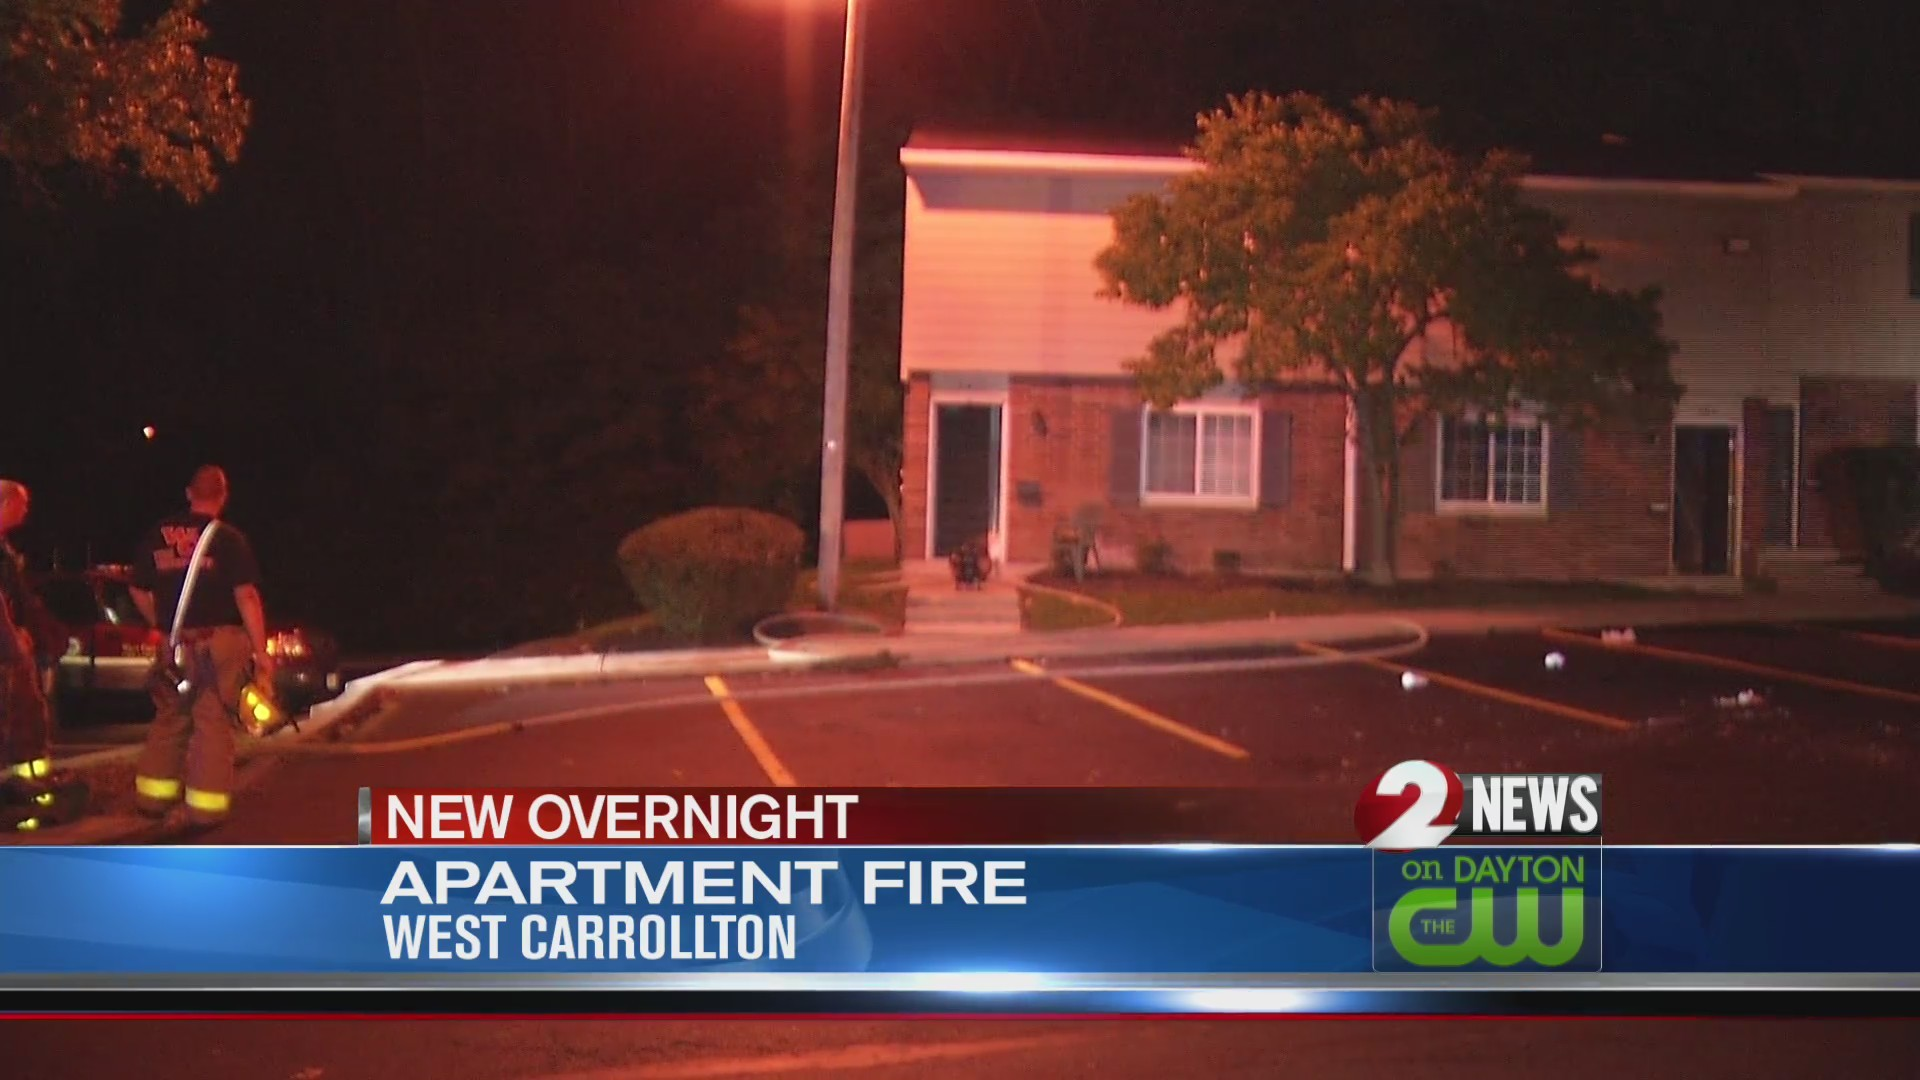 Dryer fire forces person from West Carrollton Apartment